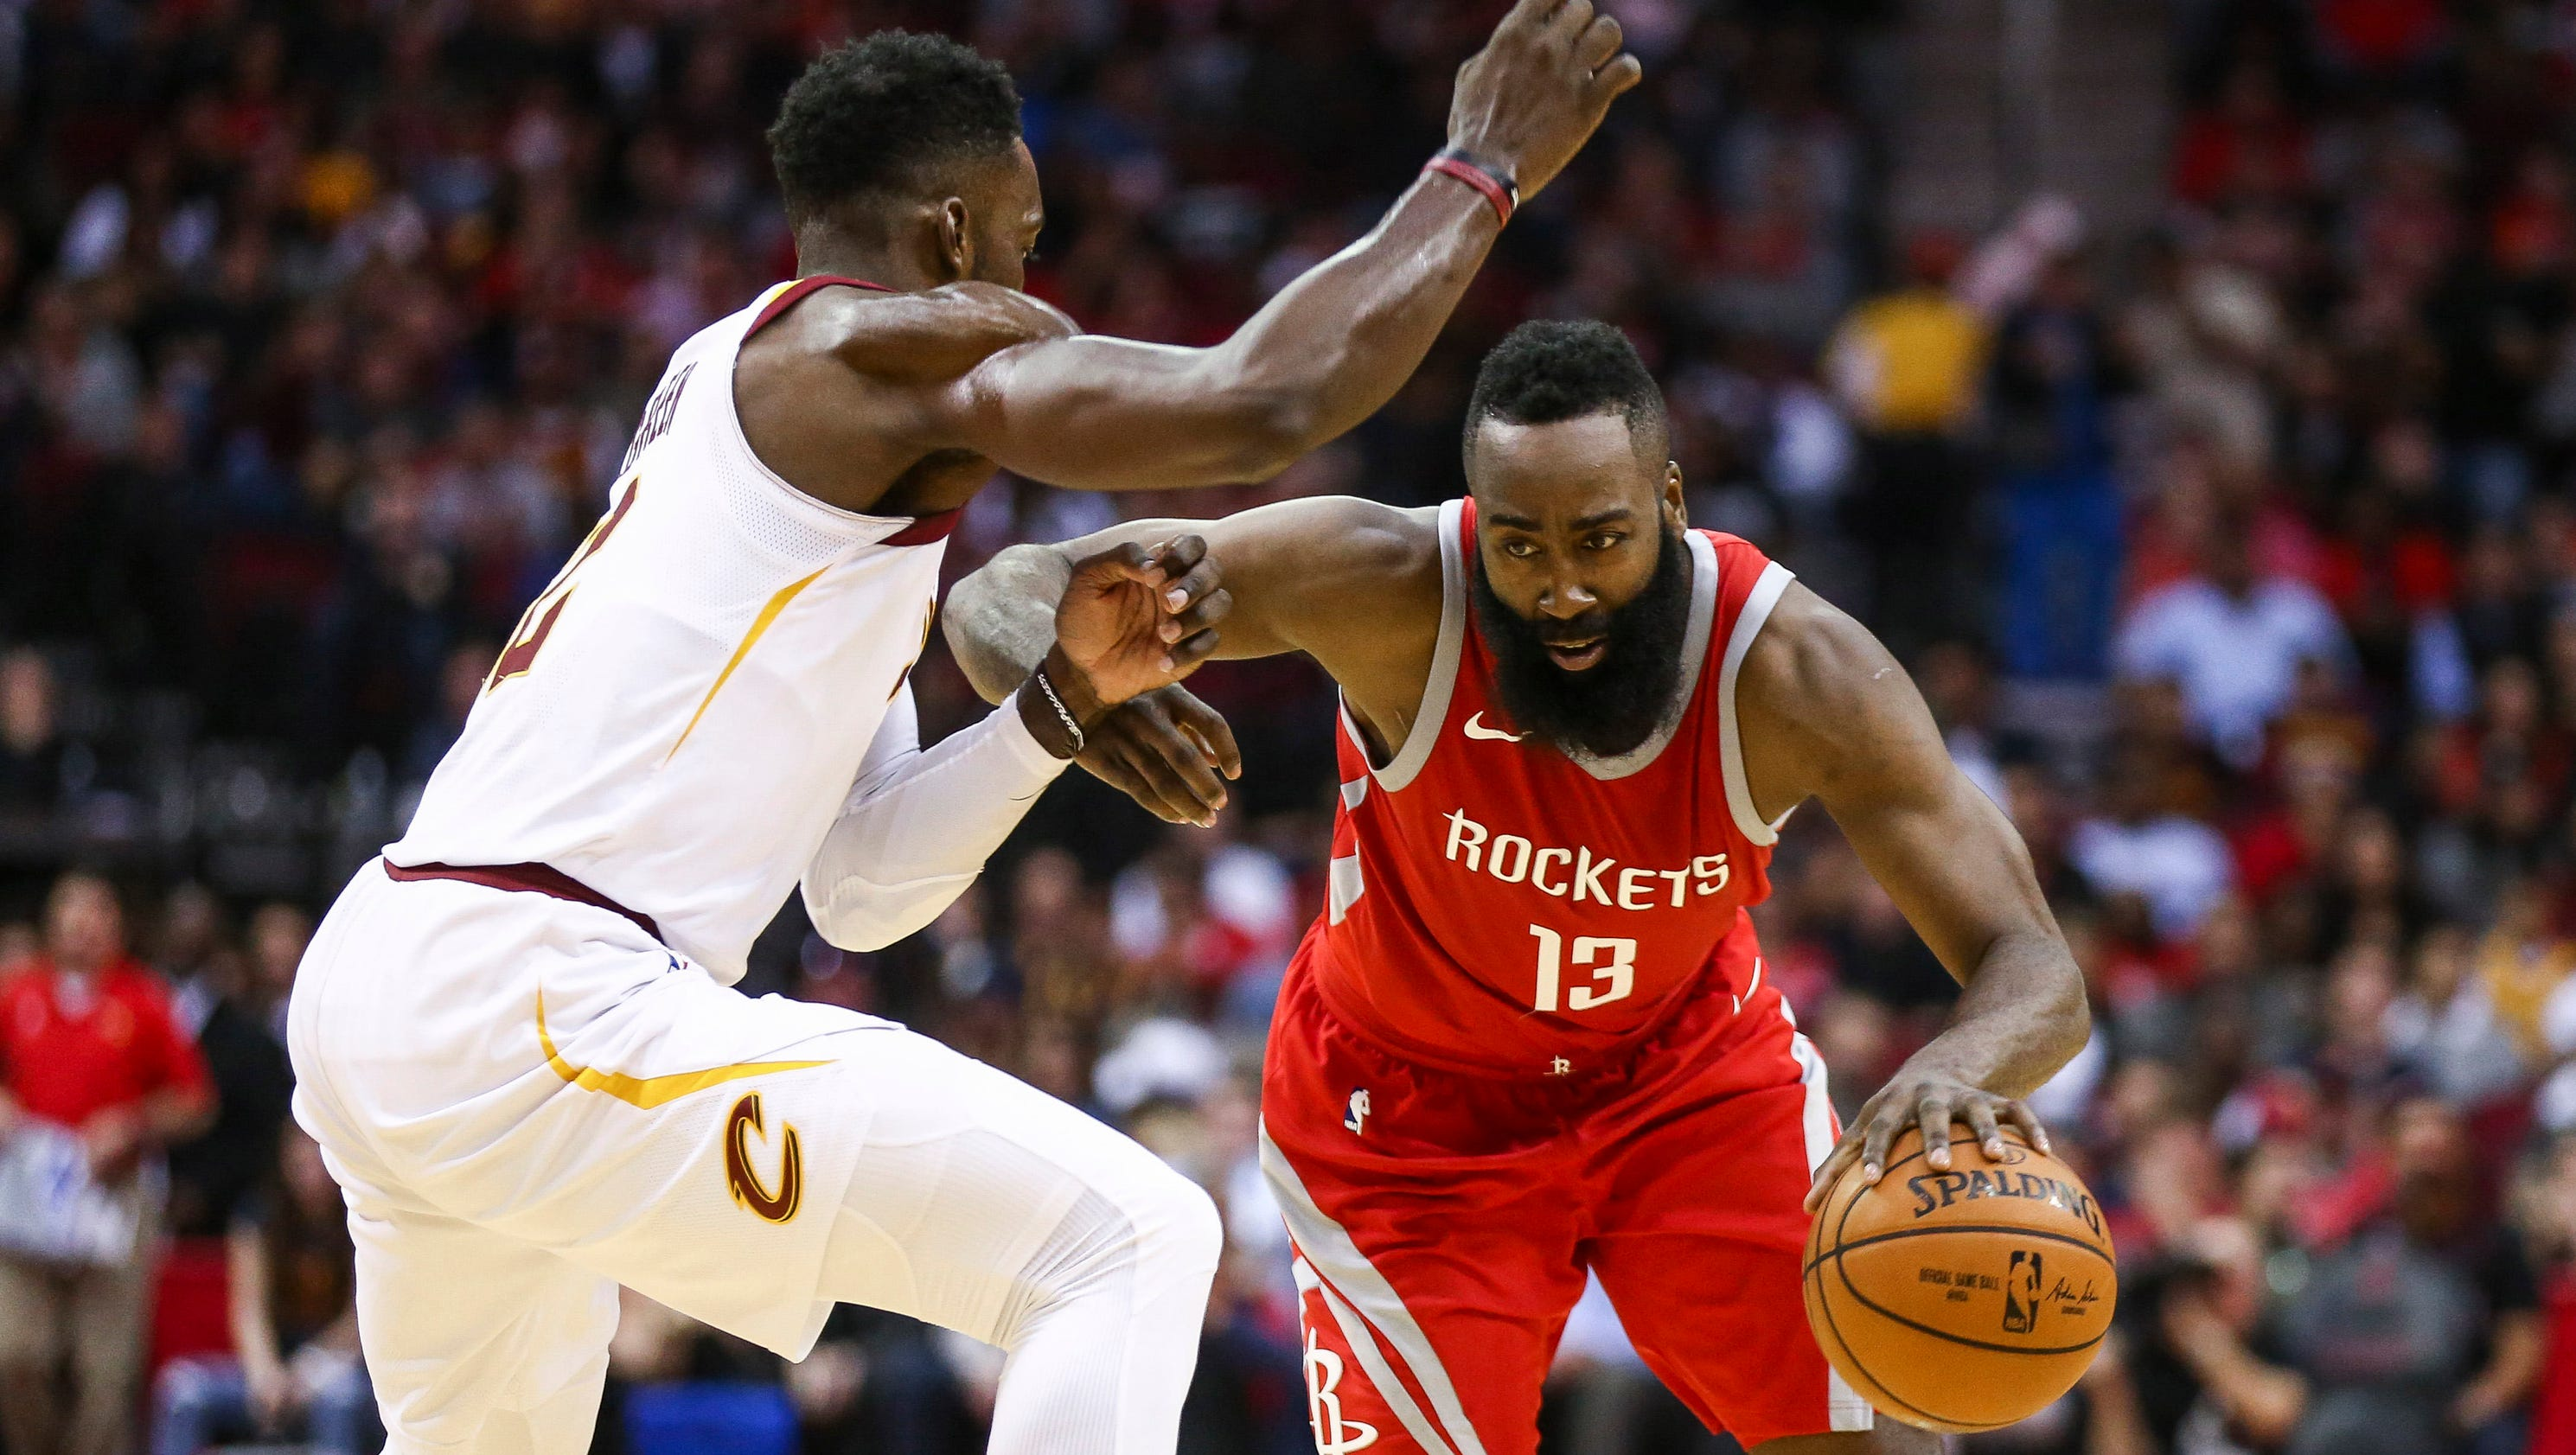 636458653880489845-usp-nba-cleveland-cavaliers-at-houston-rockets-95205501